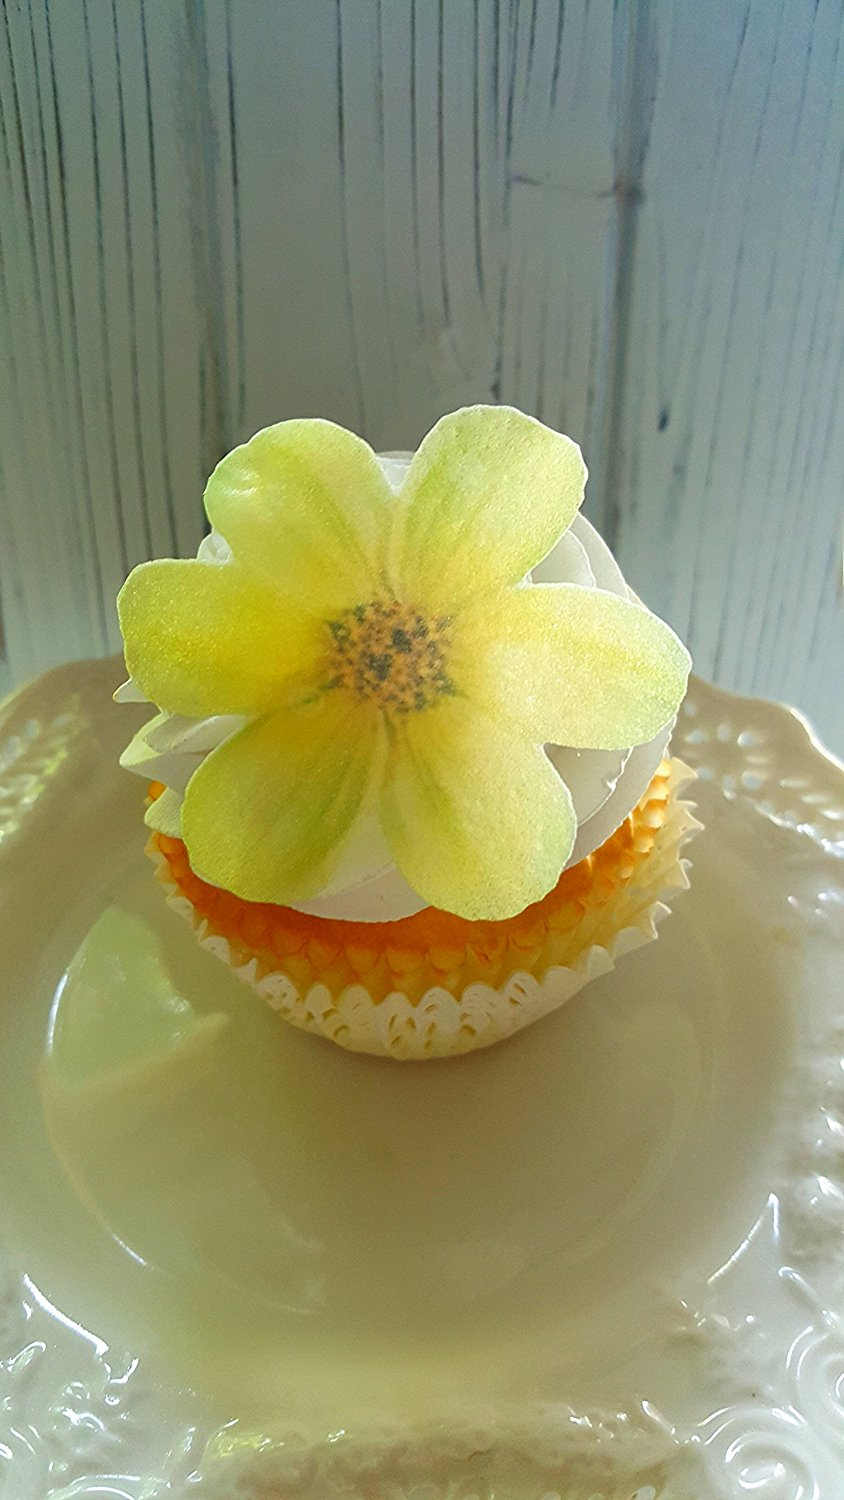 Cheap edible flowers for cake find edible flowers for cake deals on get quotations edible garden yellow flowers cake decorations cupcake toppers set of 12 izmirmasajfo